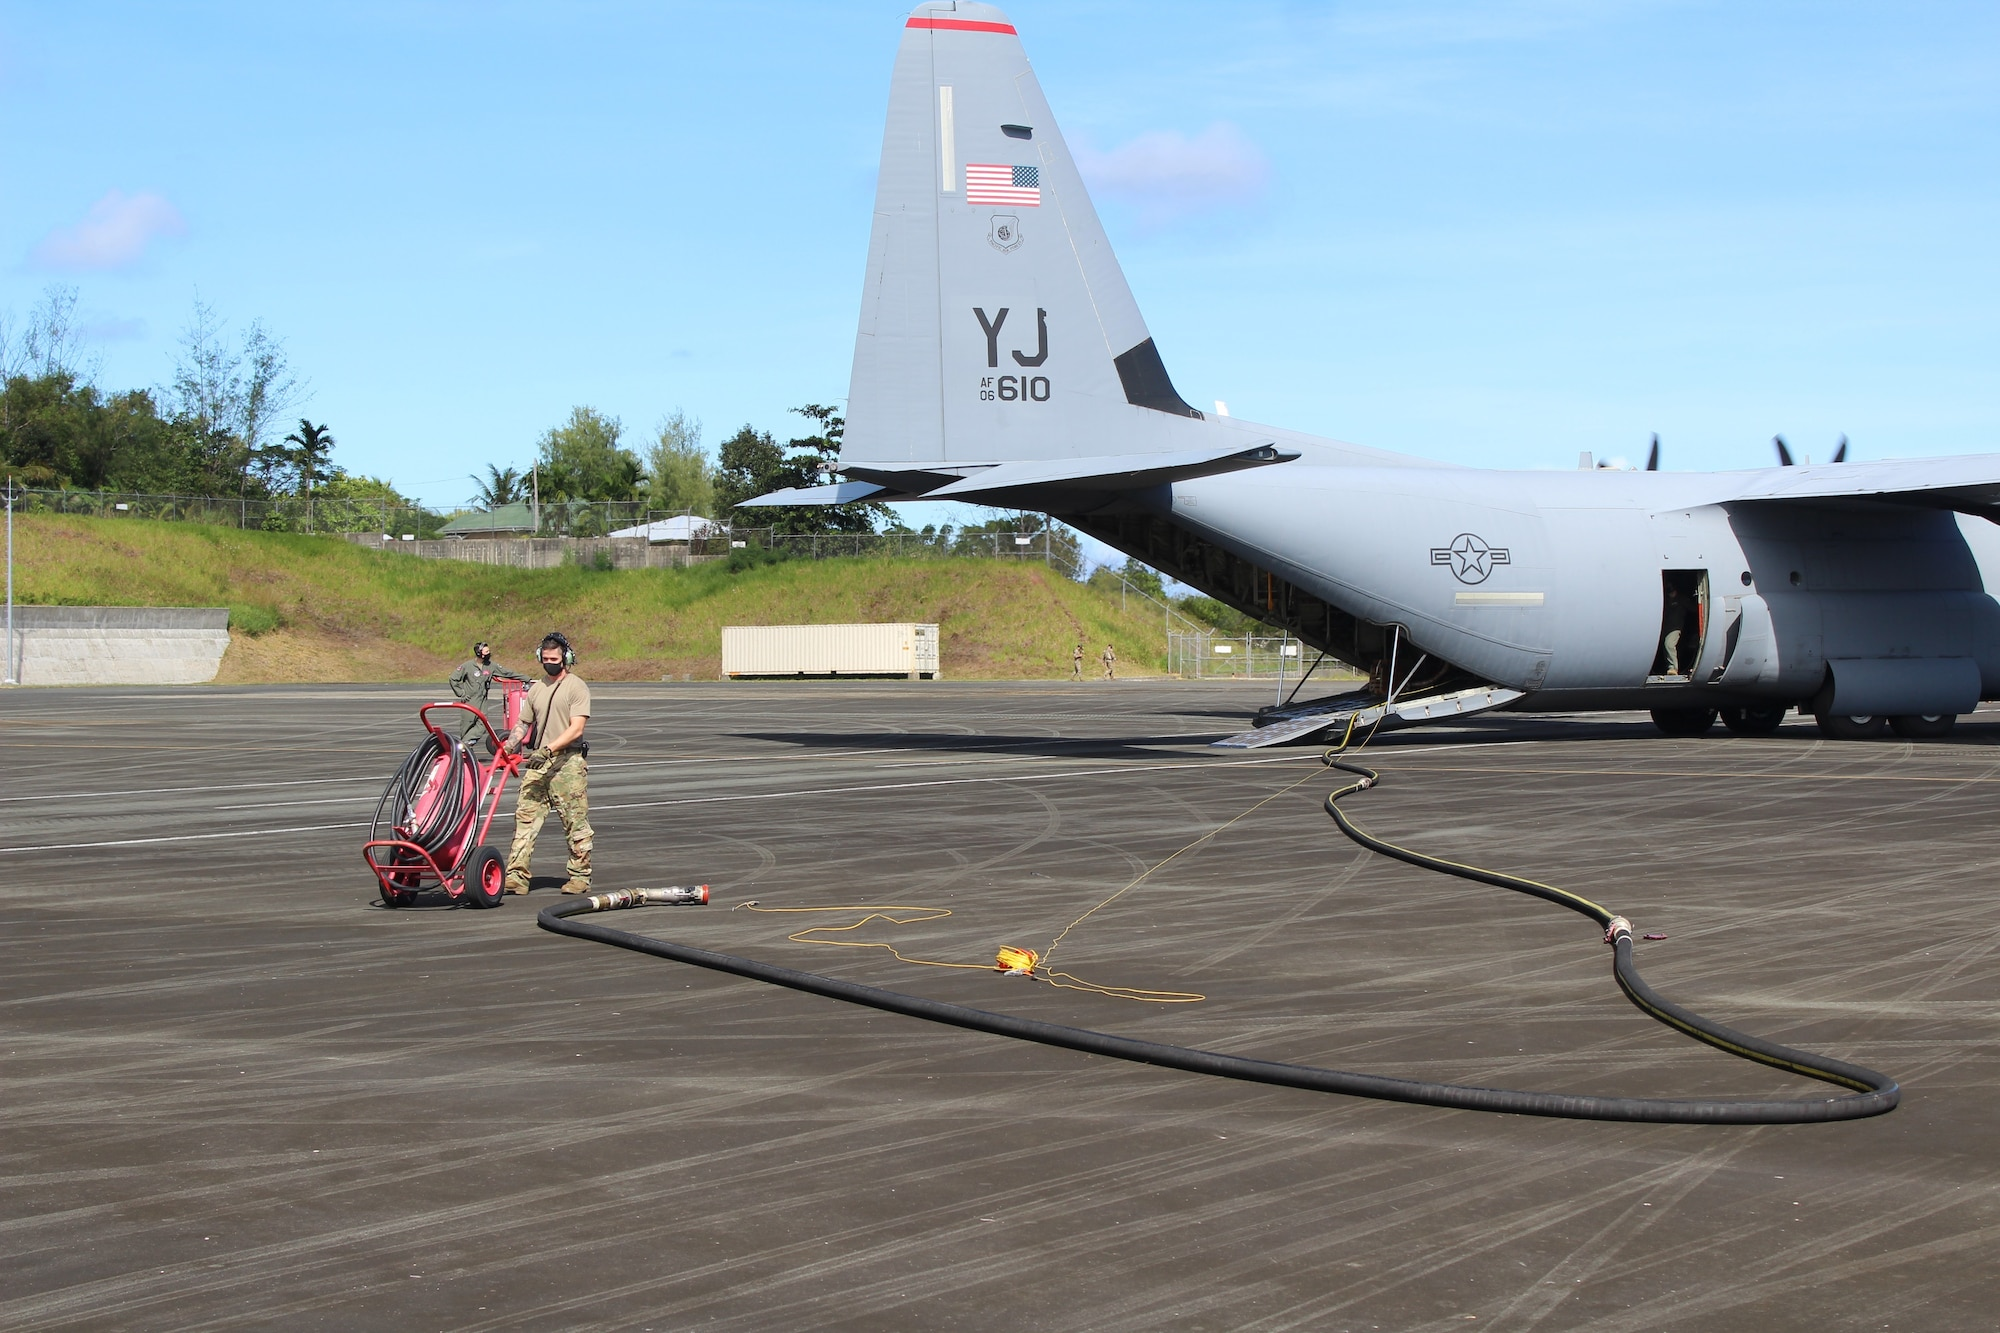 A U.S. Air Force Airman prepares to provide fuel to a U.S. Air Force C-130J assigned to the 36th Airlift Squadron, Yokota Air Base, Japan, during a Dynamic Force Employment on Palau, Nov. 24, 2020. DFE is an operational platform that allows our forces to be strategically predictable and operationally unpredictable. The United States security presence, along with our allies and partners, underpins the peace and stability that has enabled the Indo-Pacific region to develop and prosper for more than seven decades. (Courtesy Photo)